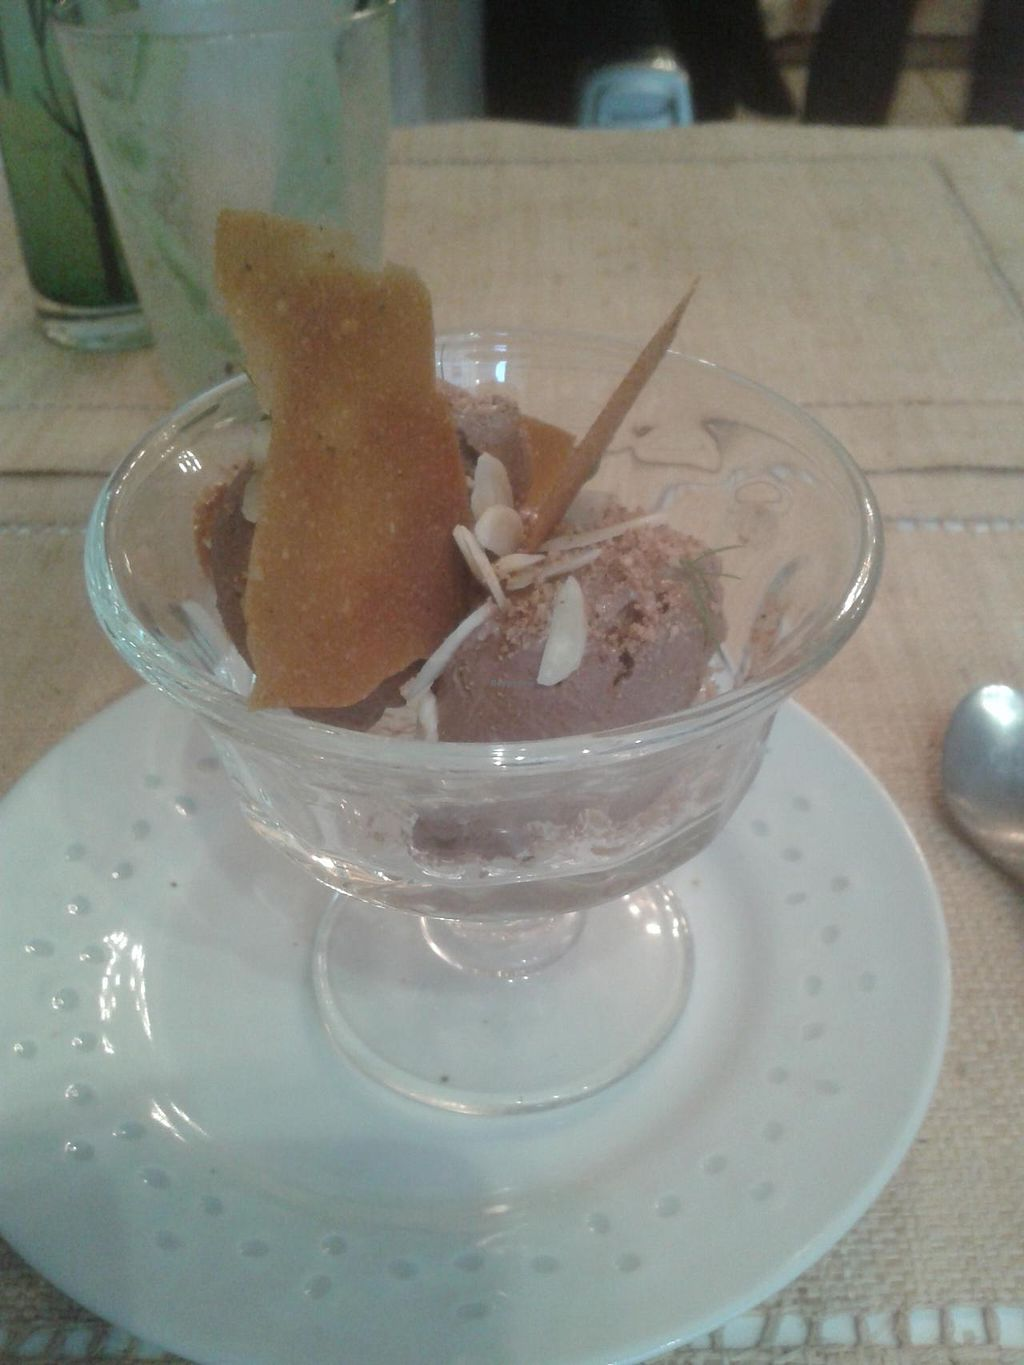 """Photo of CLOSED: Pousse-Pousse  by <a href=""""/members/profile/JonJon"""">JonJon</a> <br/>Vegan icecream with dates and chocolate <br/> January 15, 2014  - <a href='/contact/abuse/image/17084/62570'>Report</a>"""